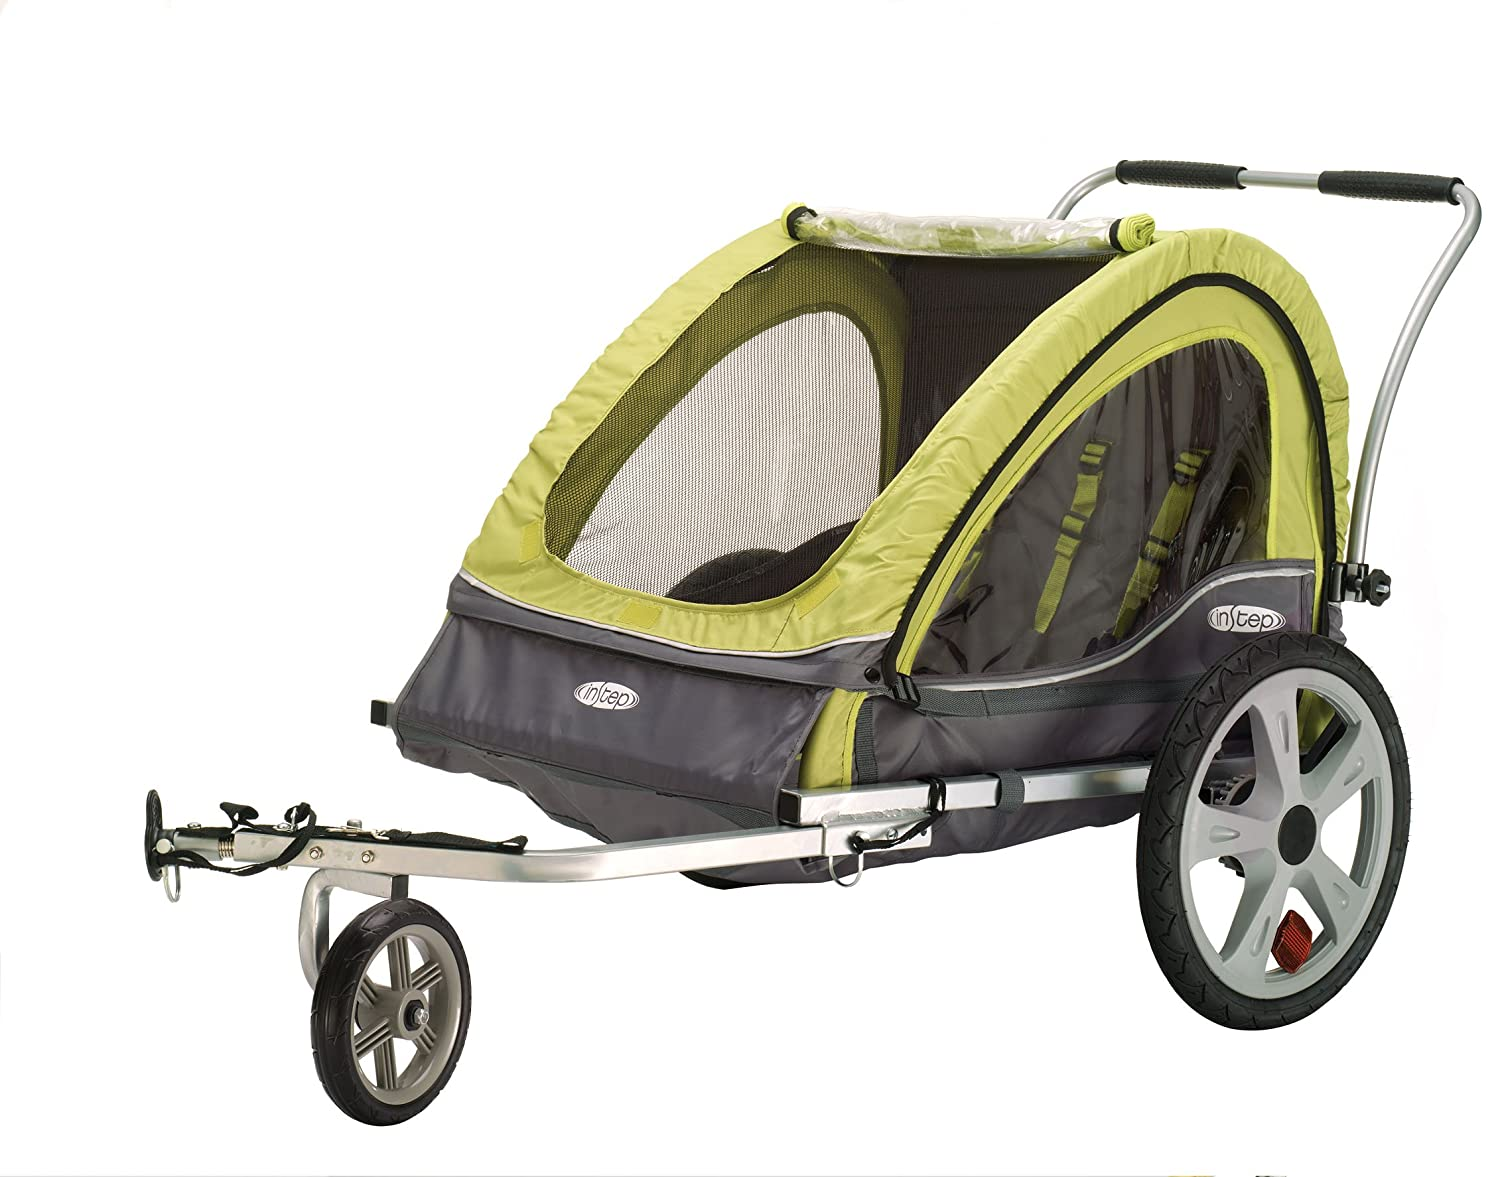 InStep Sierra Double Seat Foldable Tow Behind Bike Trailers, Converts to Stroller/Jogger, Featuring 2-in-1 Canopy and 20-Inch Wheels, for Kids and Children, Multiple Colors Available